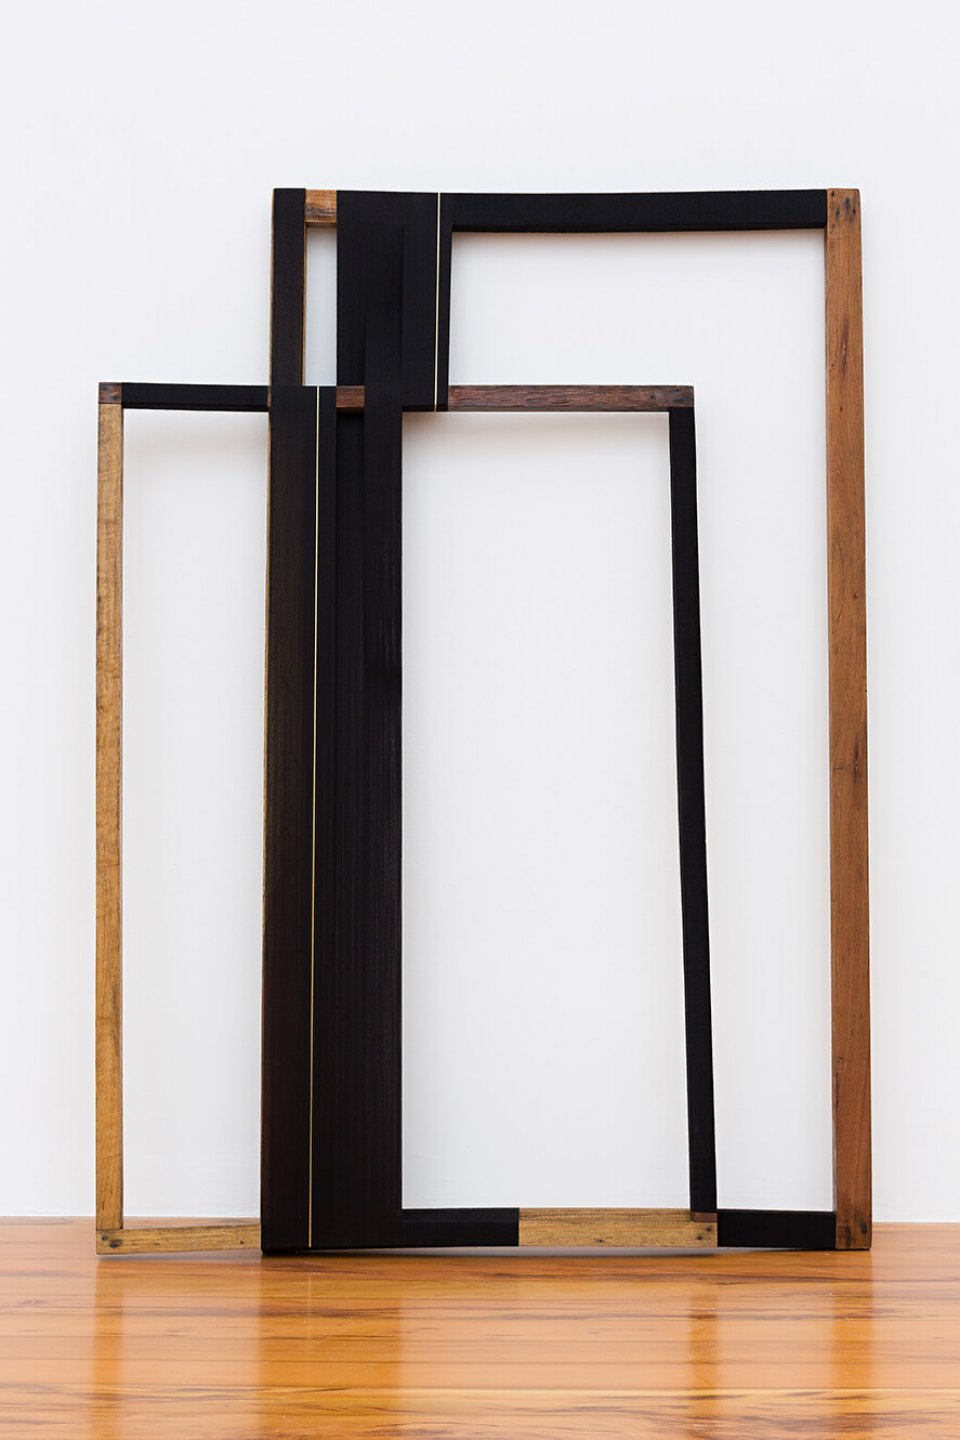 Paloma Bosquê, <em>Rhythm for 2</em>, 2014, lurex threads and polyester on wood frame, 149 × 108 × 20 cm - Mendes Wood DM